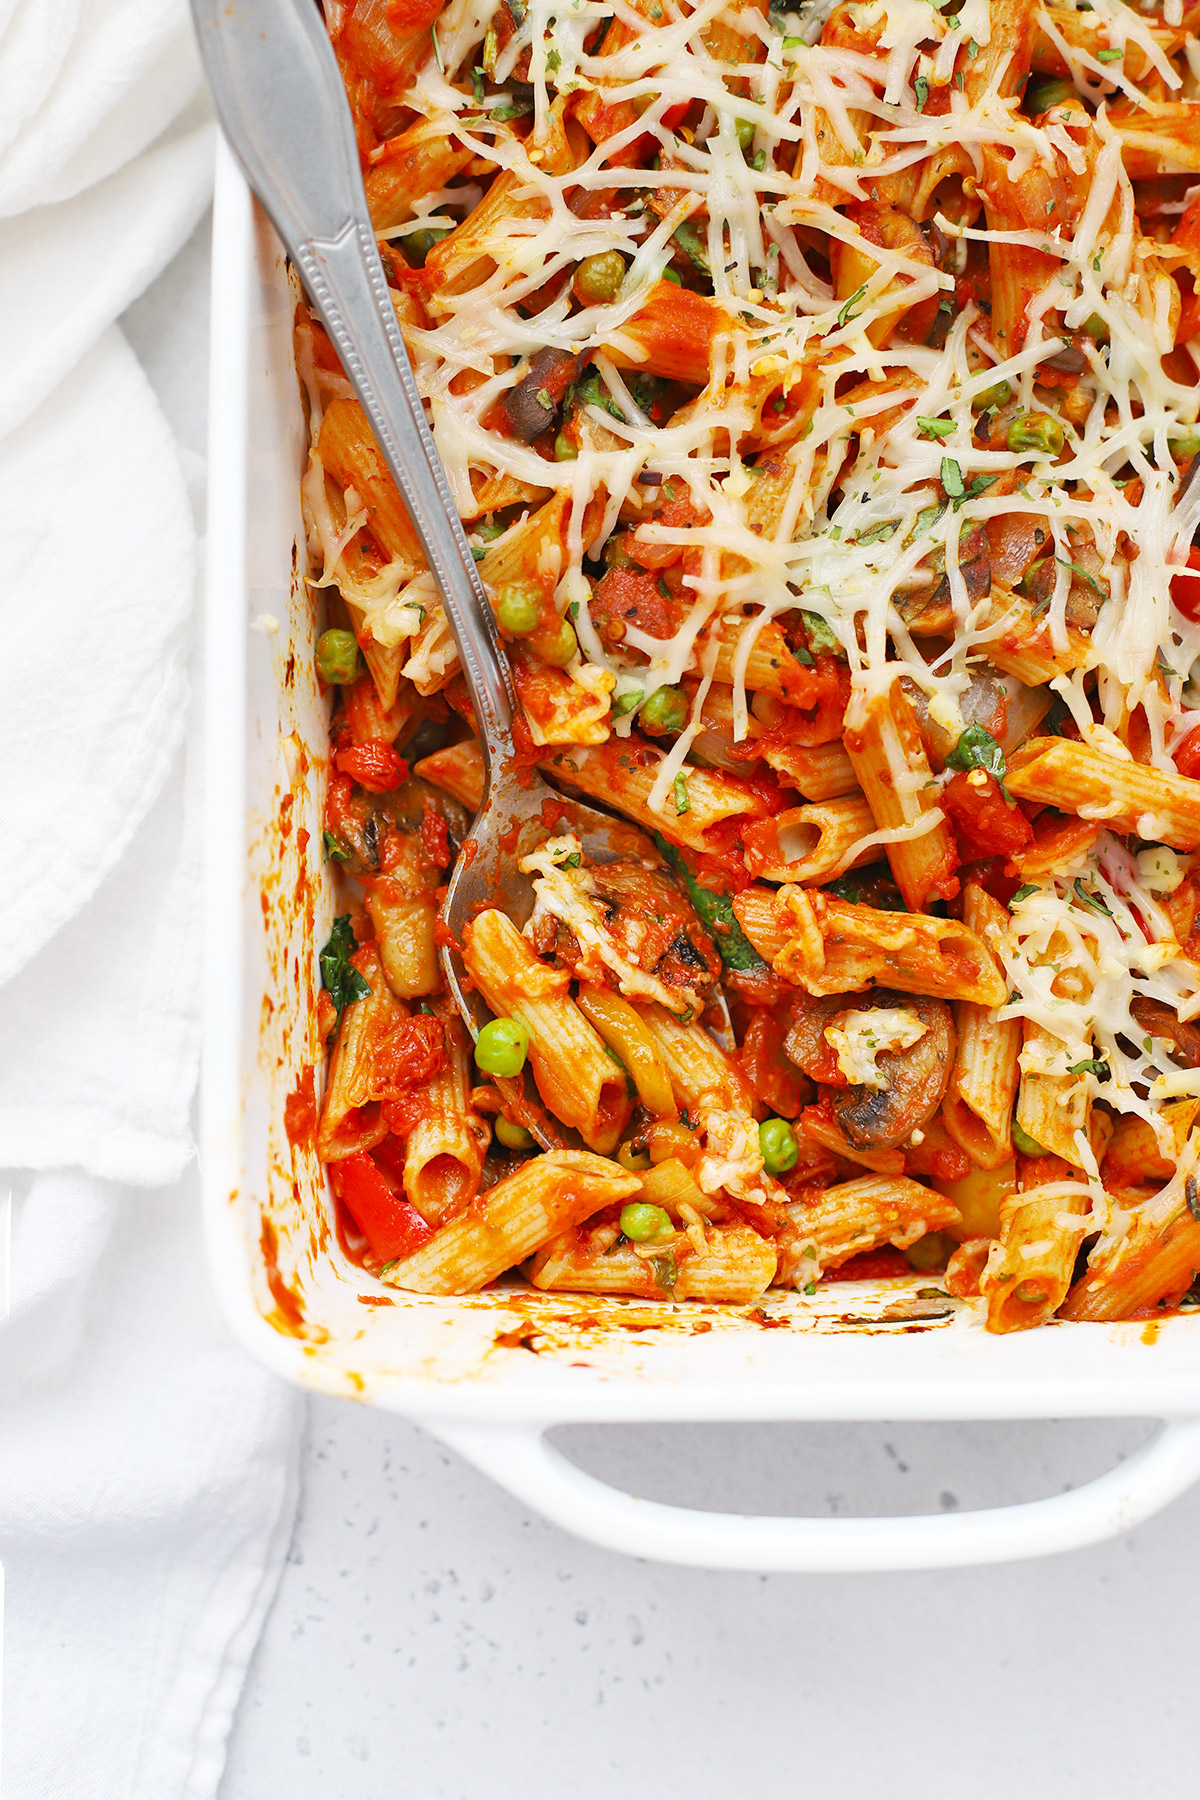 Overhead view of a spoon scooping out a serving of gluten free baked penne with roasted veggies